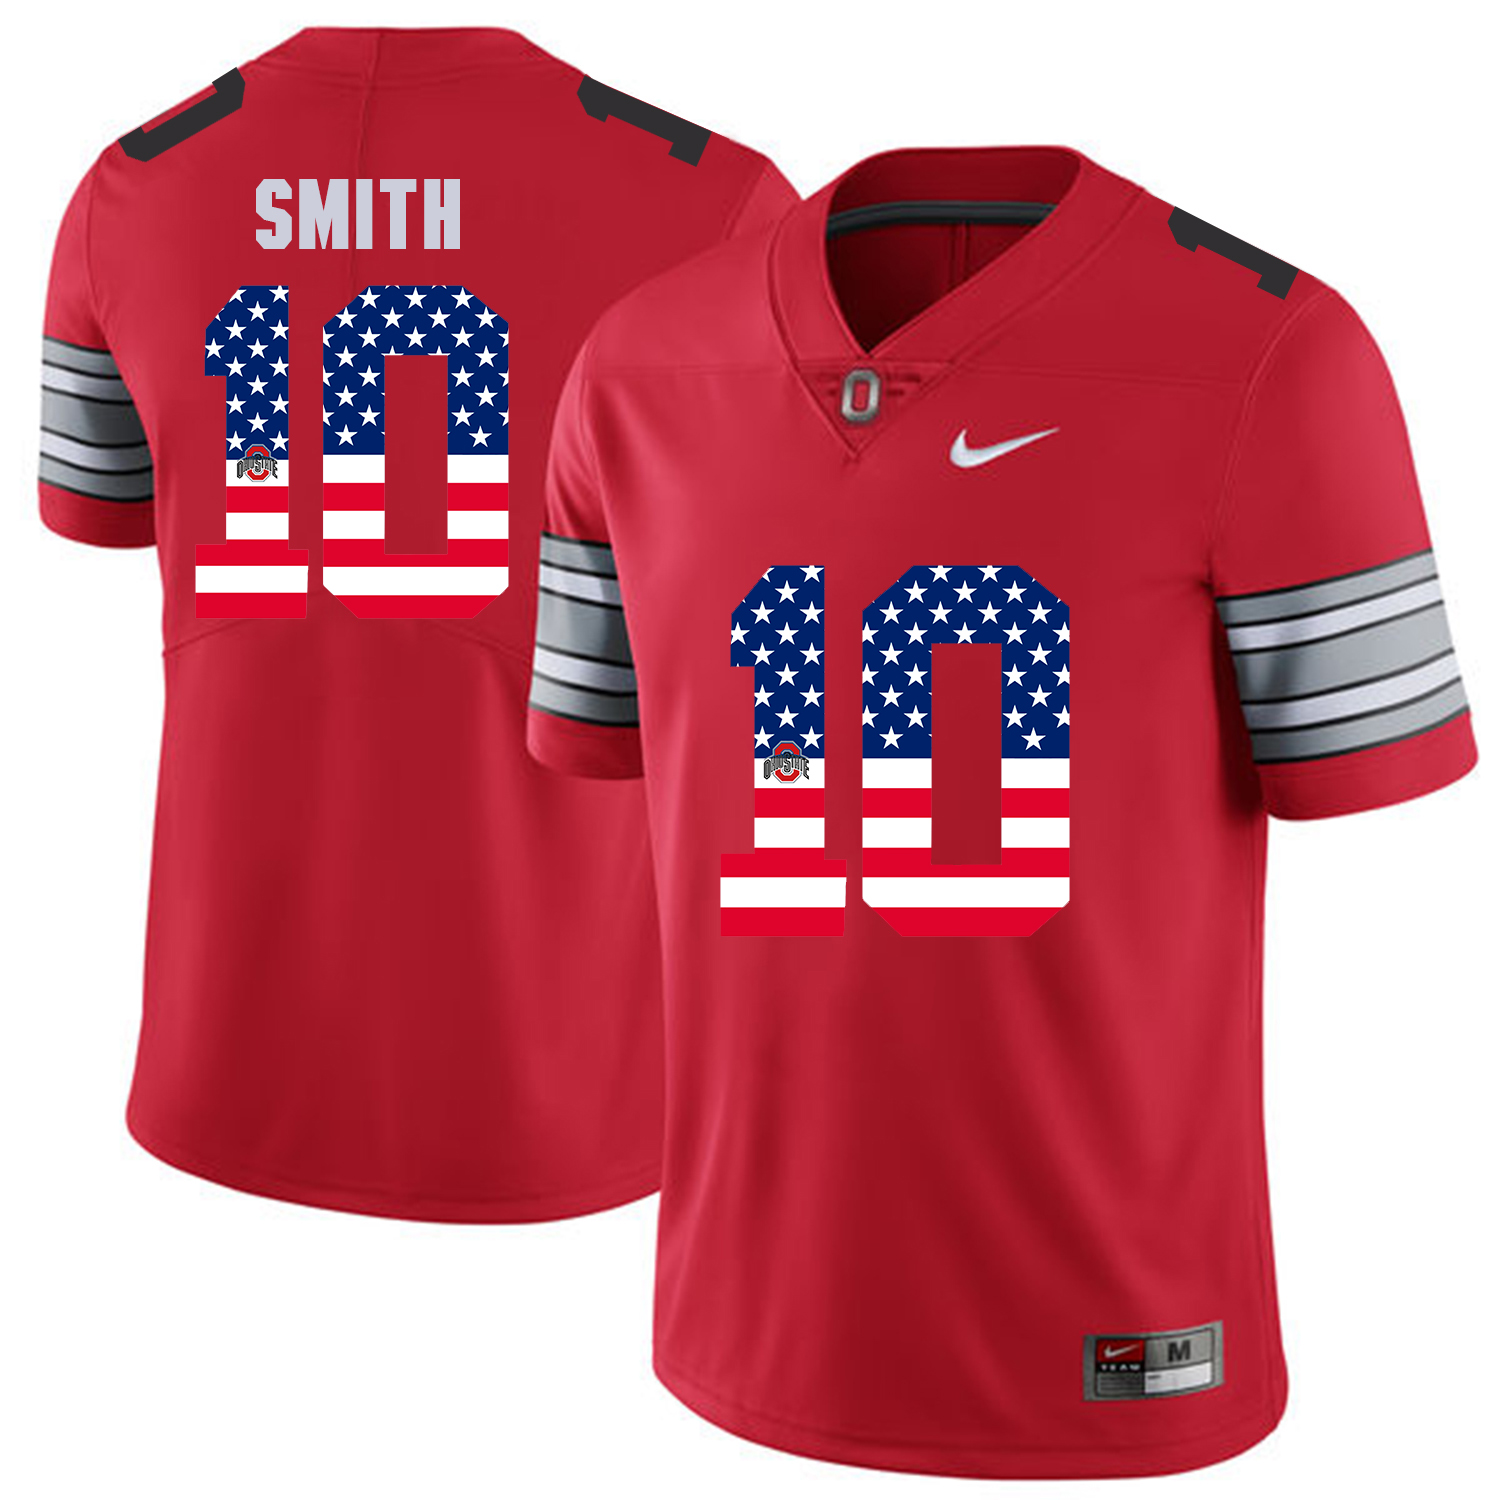 Men Ohio State 10 Smith Red Flag Customized NCAA Jerseys